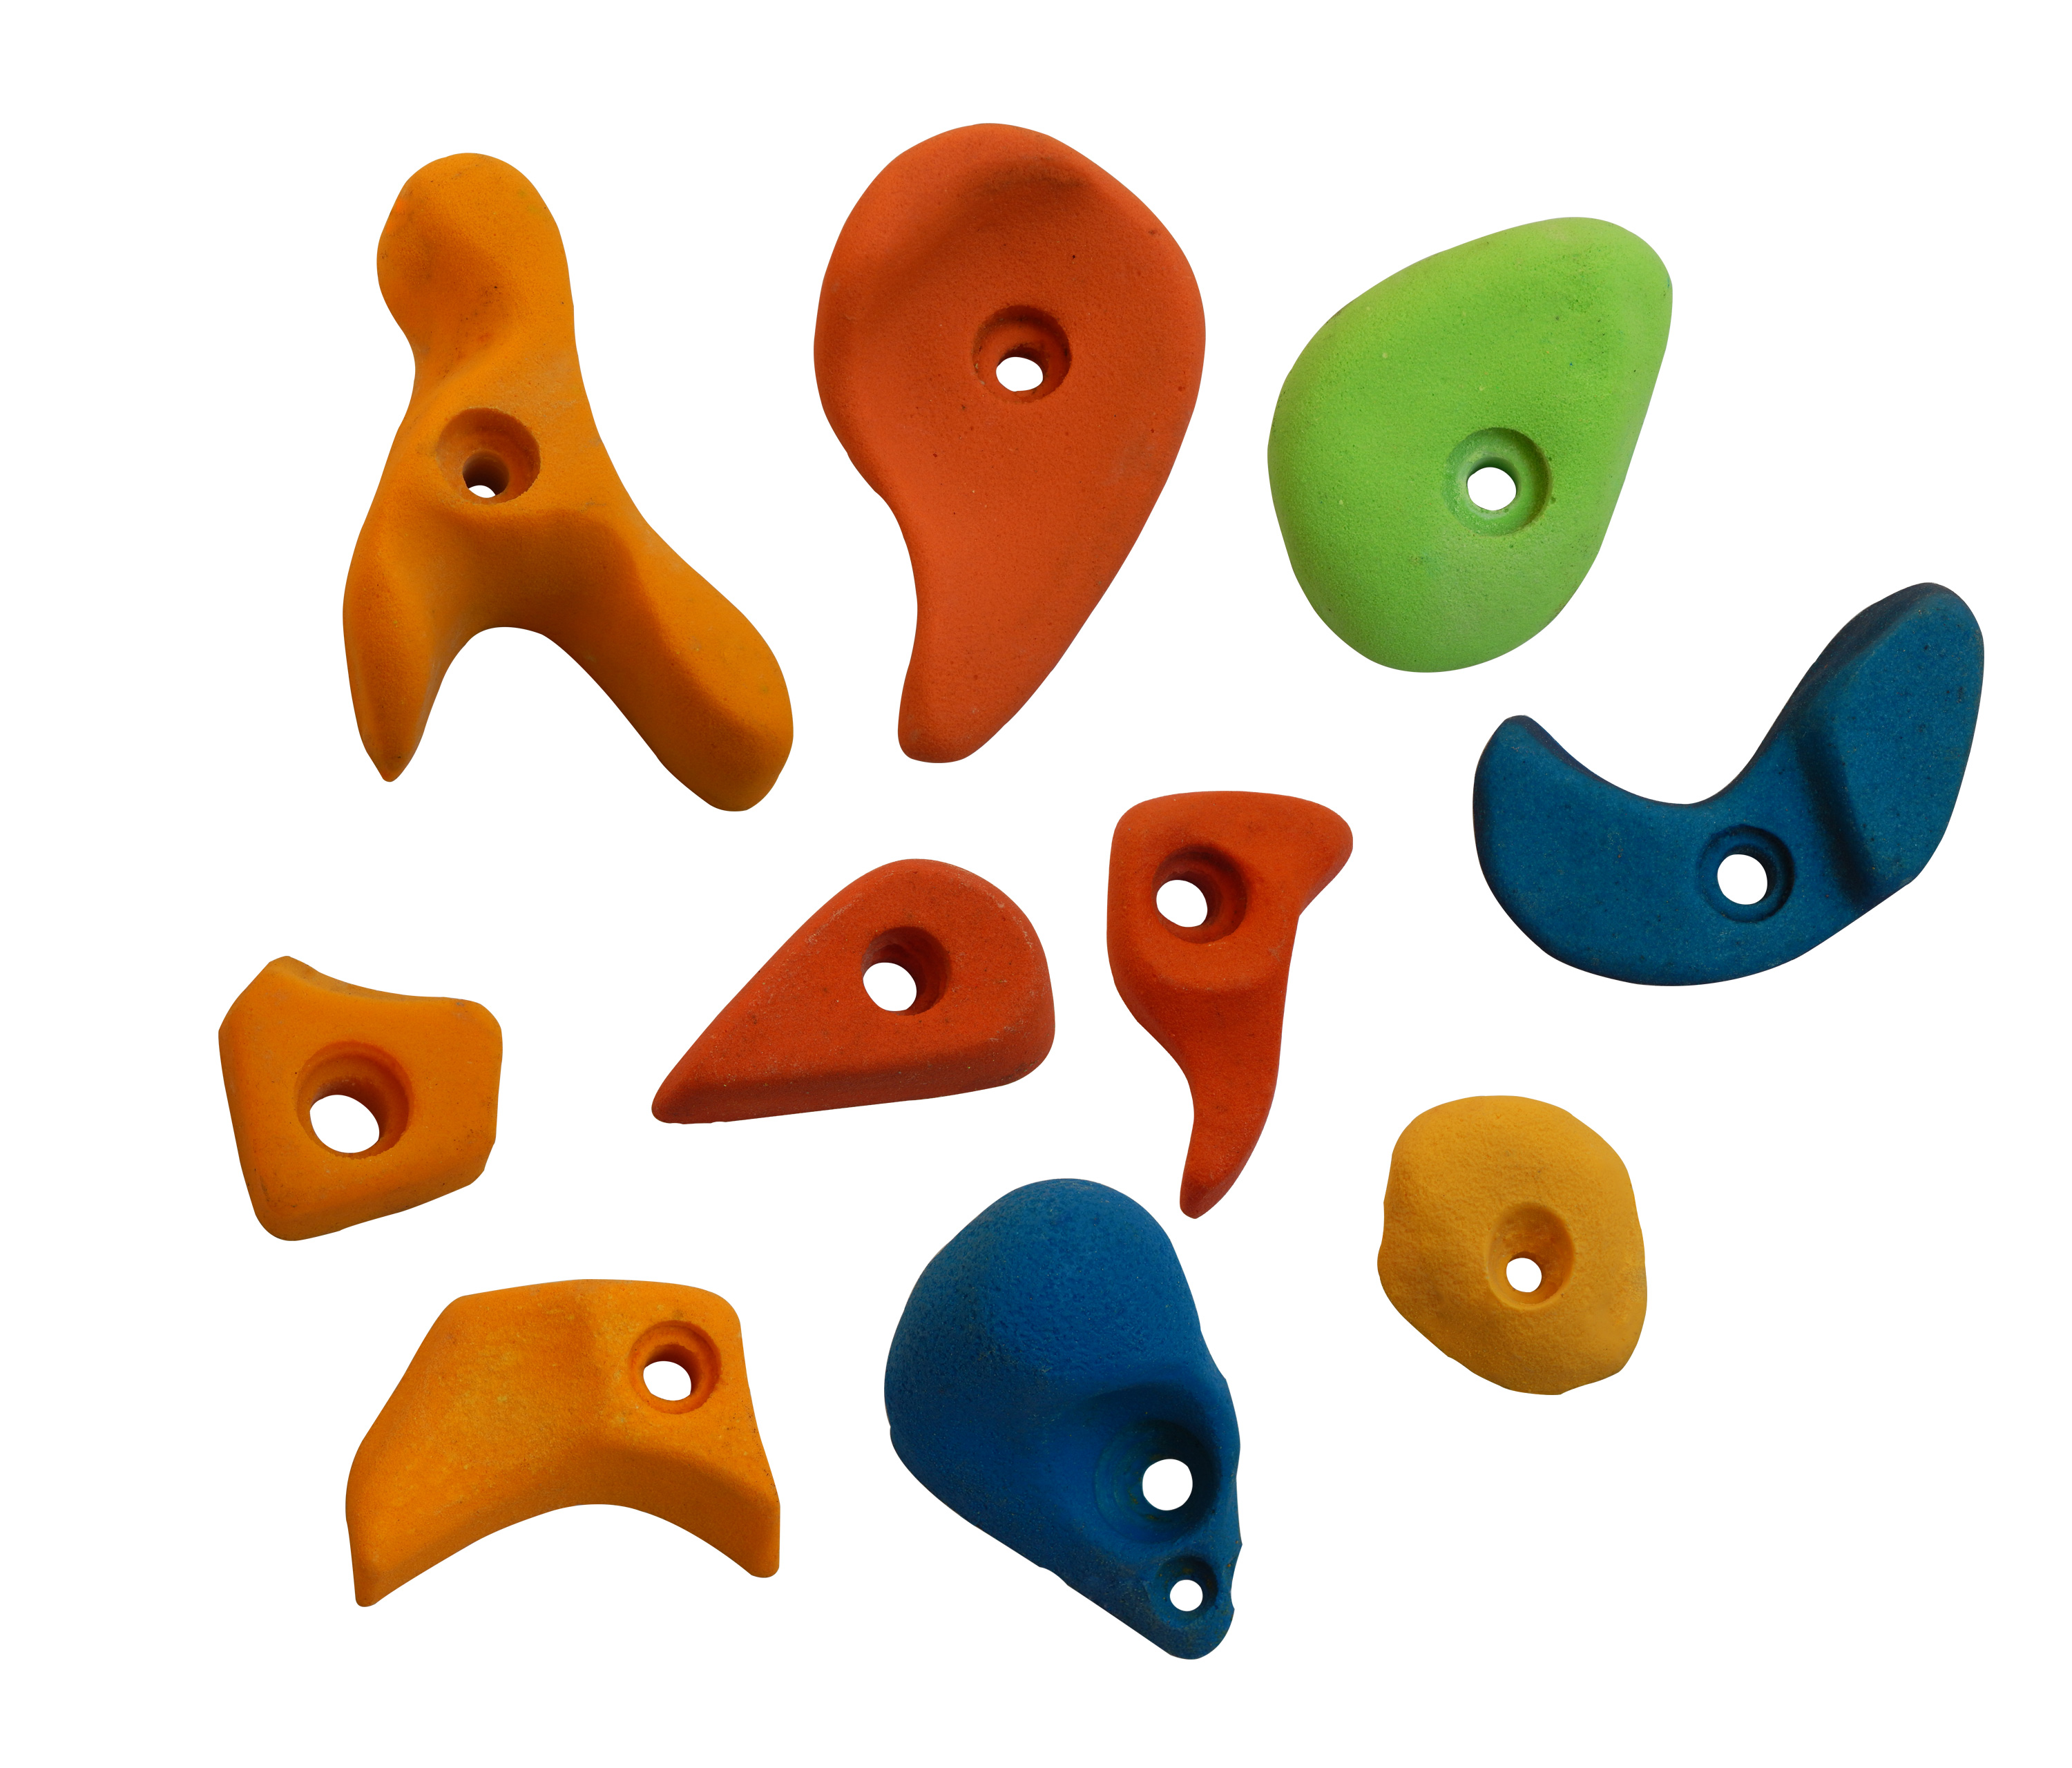 Mix Climbing Holds Manufacturers in Haryana